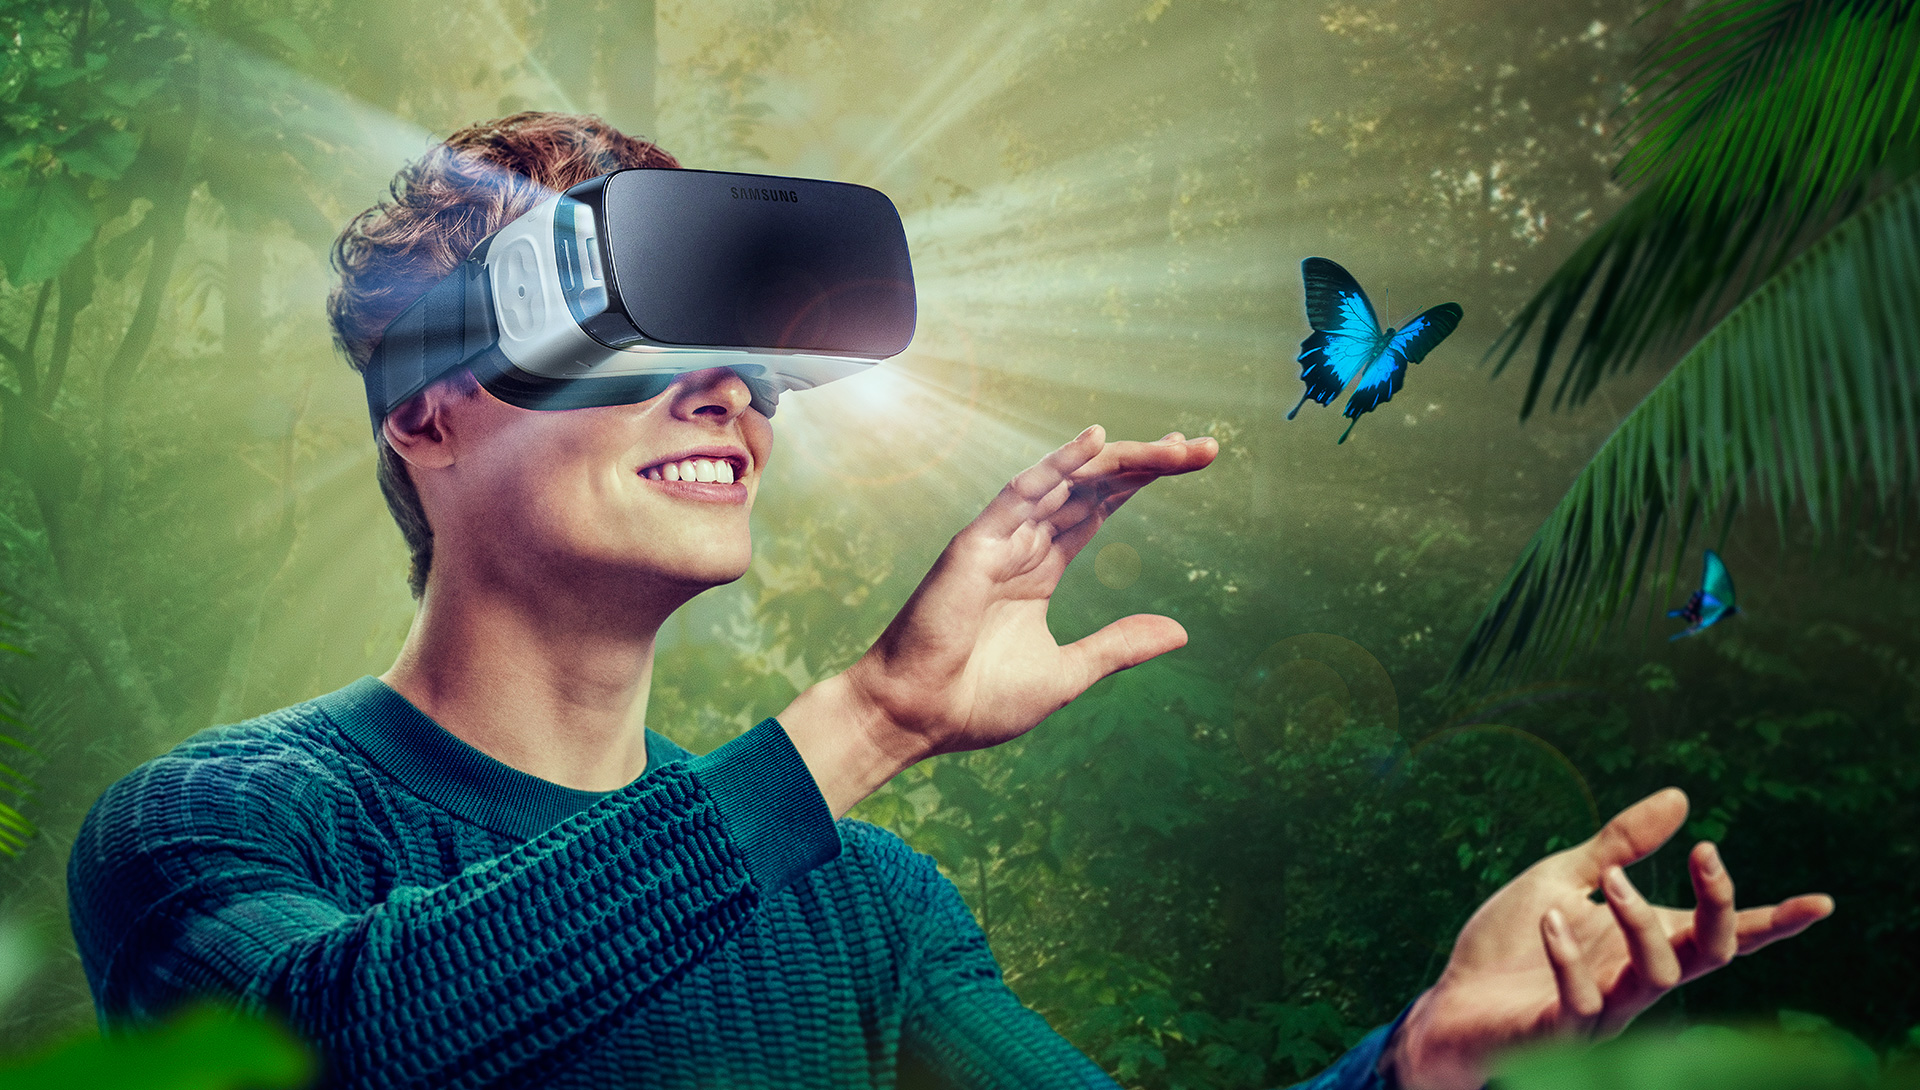 A man in a VR headset stares in wonder at a butterfly